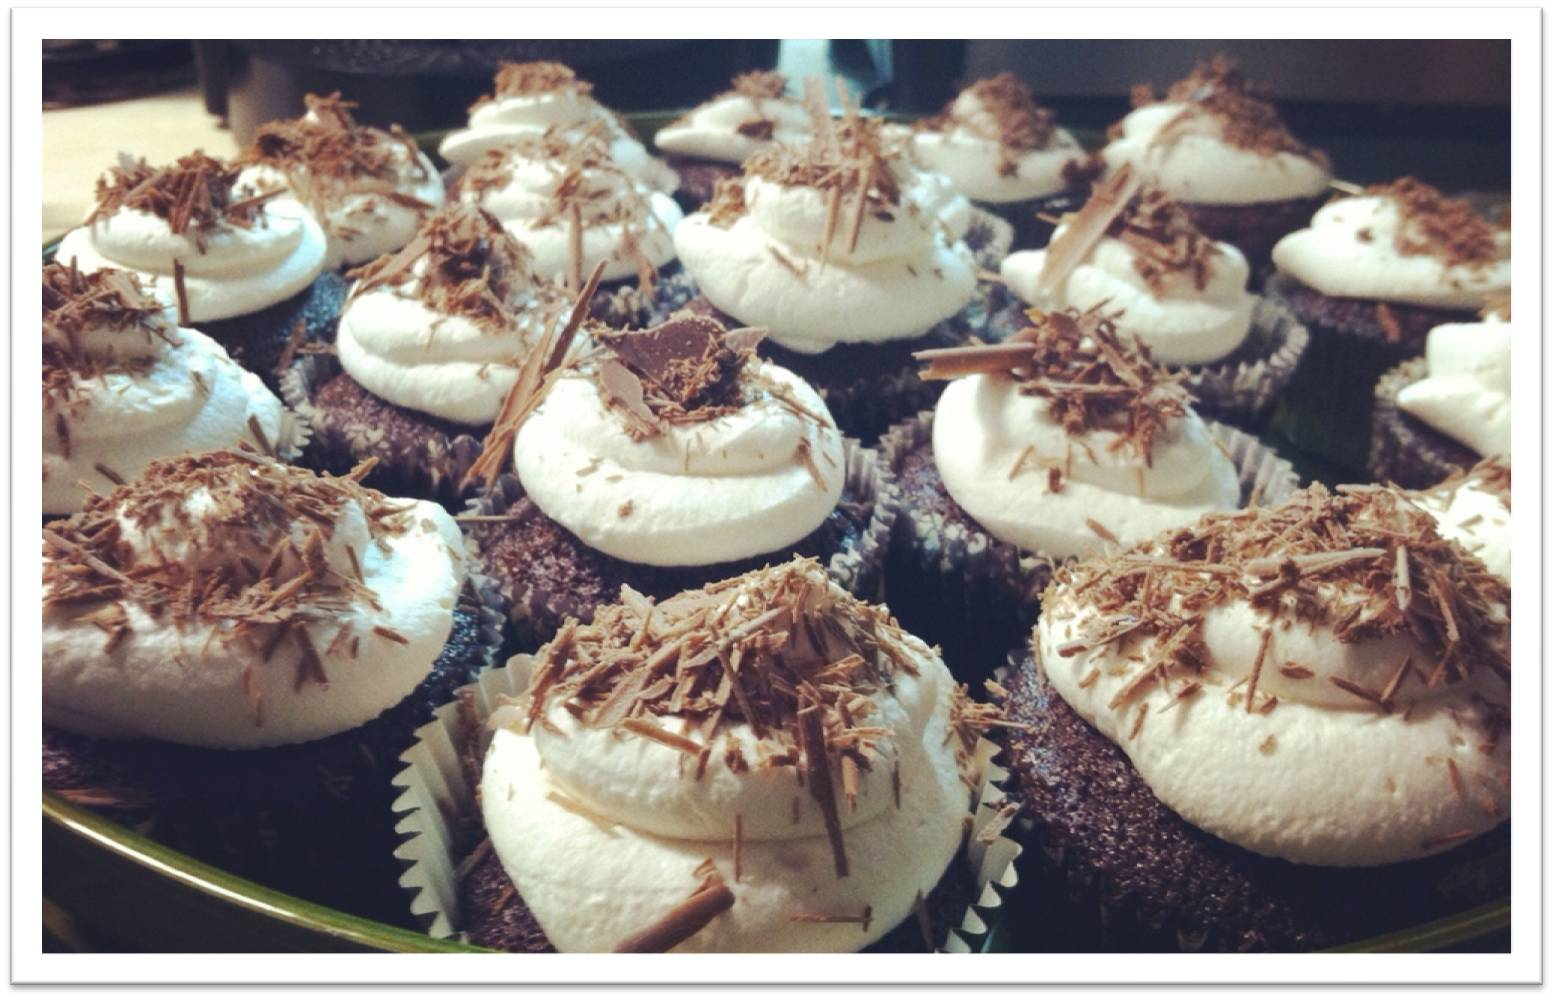 ... : black magic chocolate cupcakes w/ vanilla whipped cream frosting